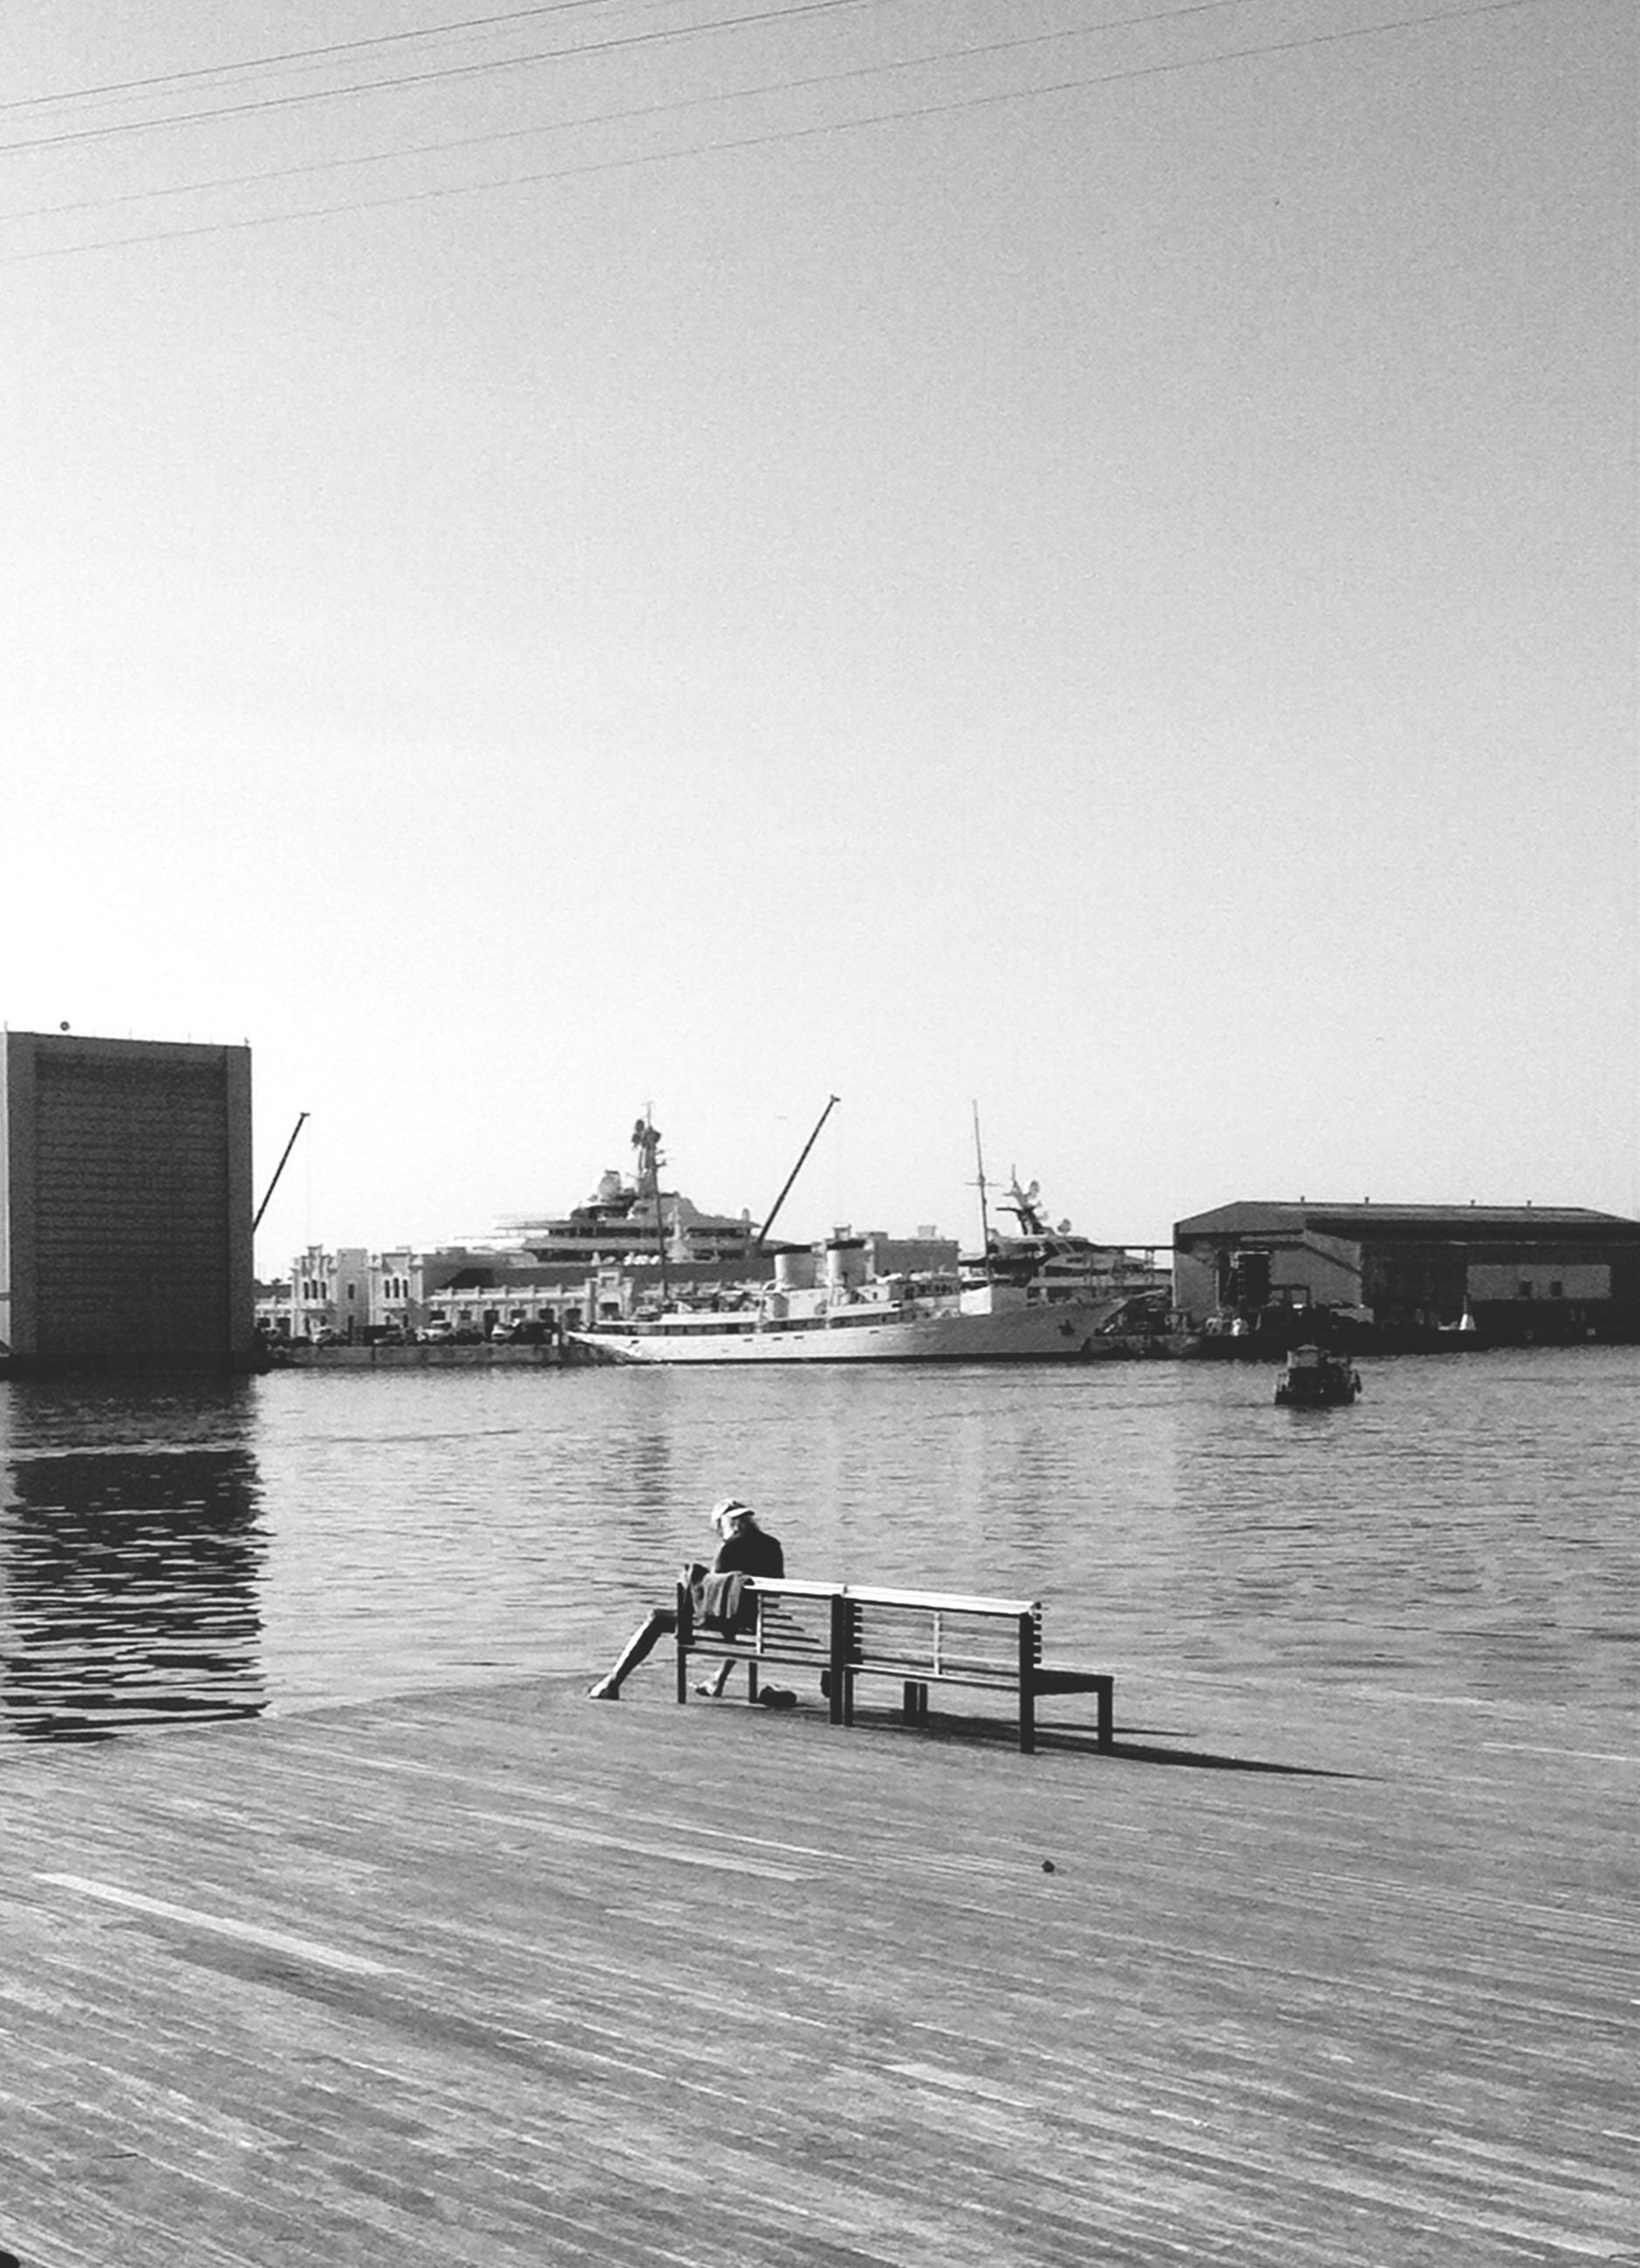 water, built structure, architecture, copy space, clear sky, men, building exterior, lifestyles, pier, leisure activity, nautical vessel, river, sitting, person, rear view, bench, lake